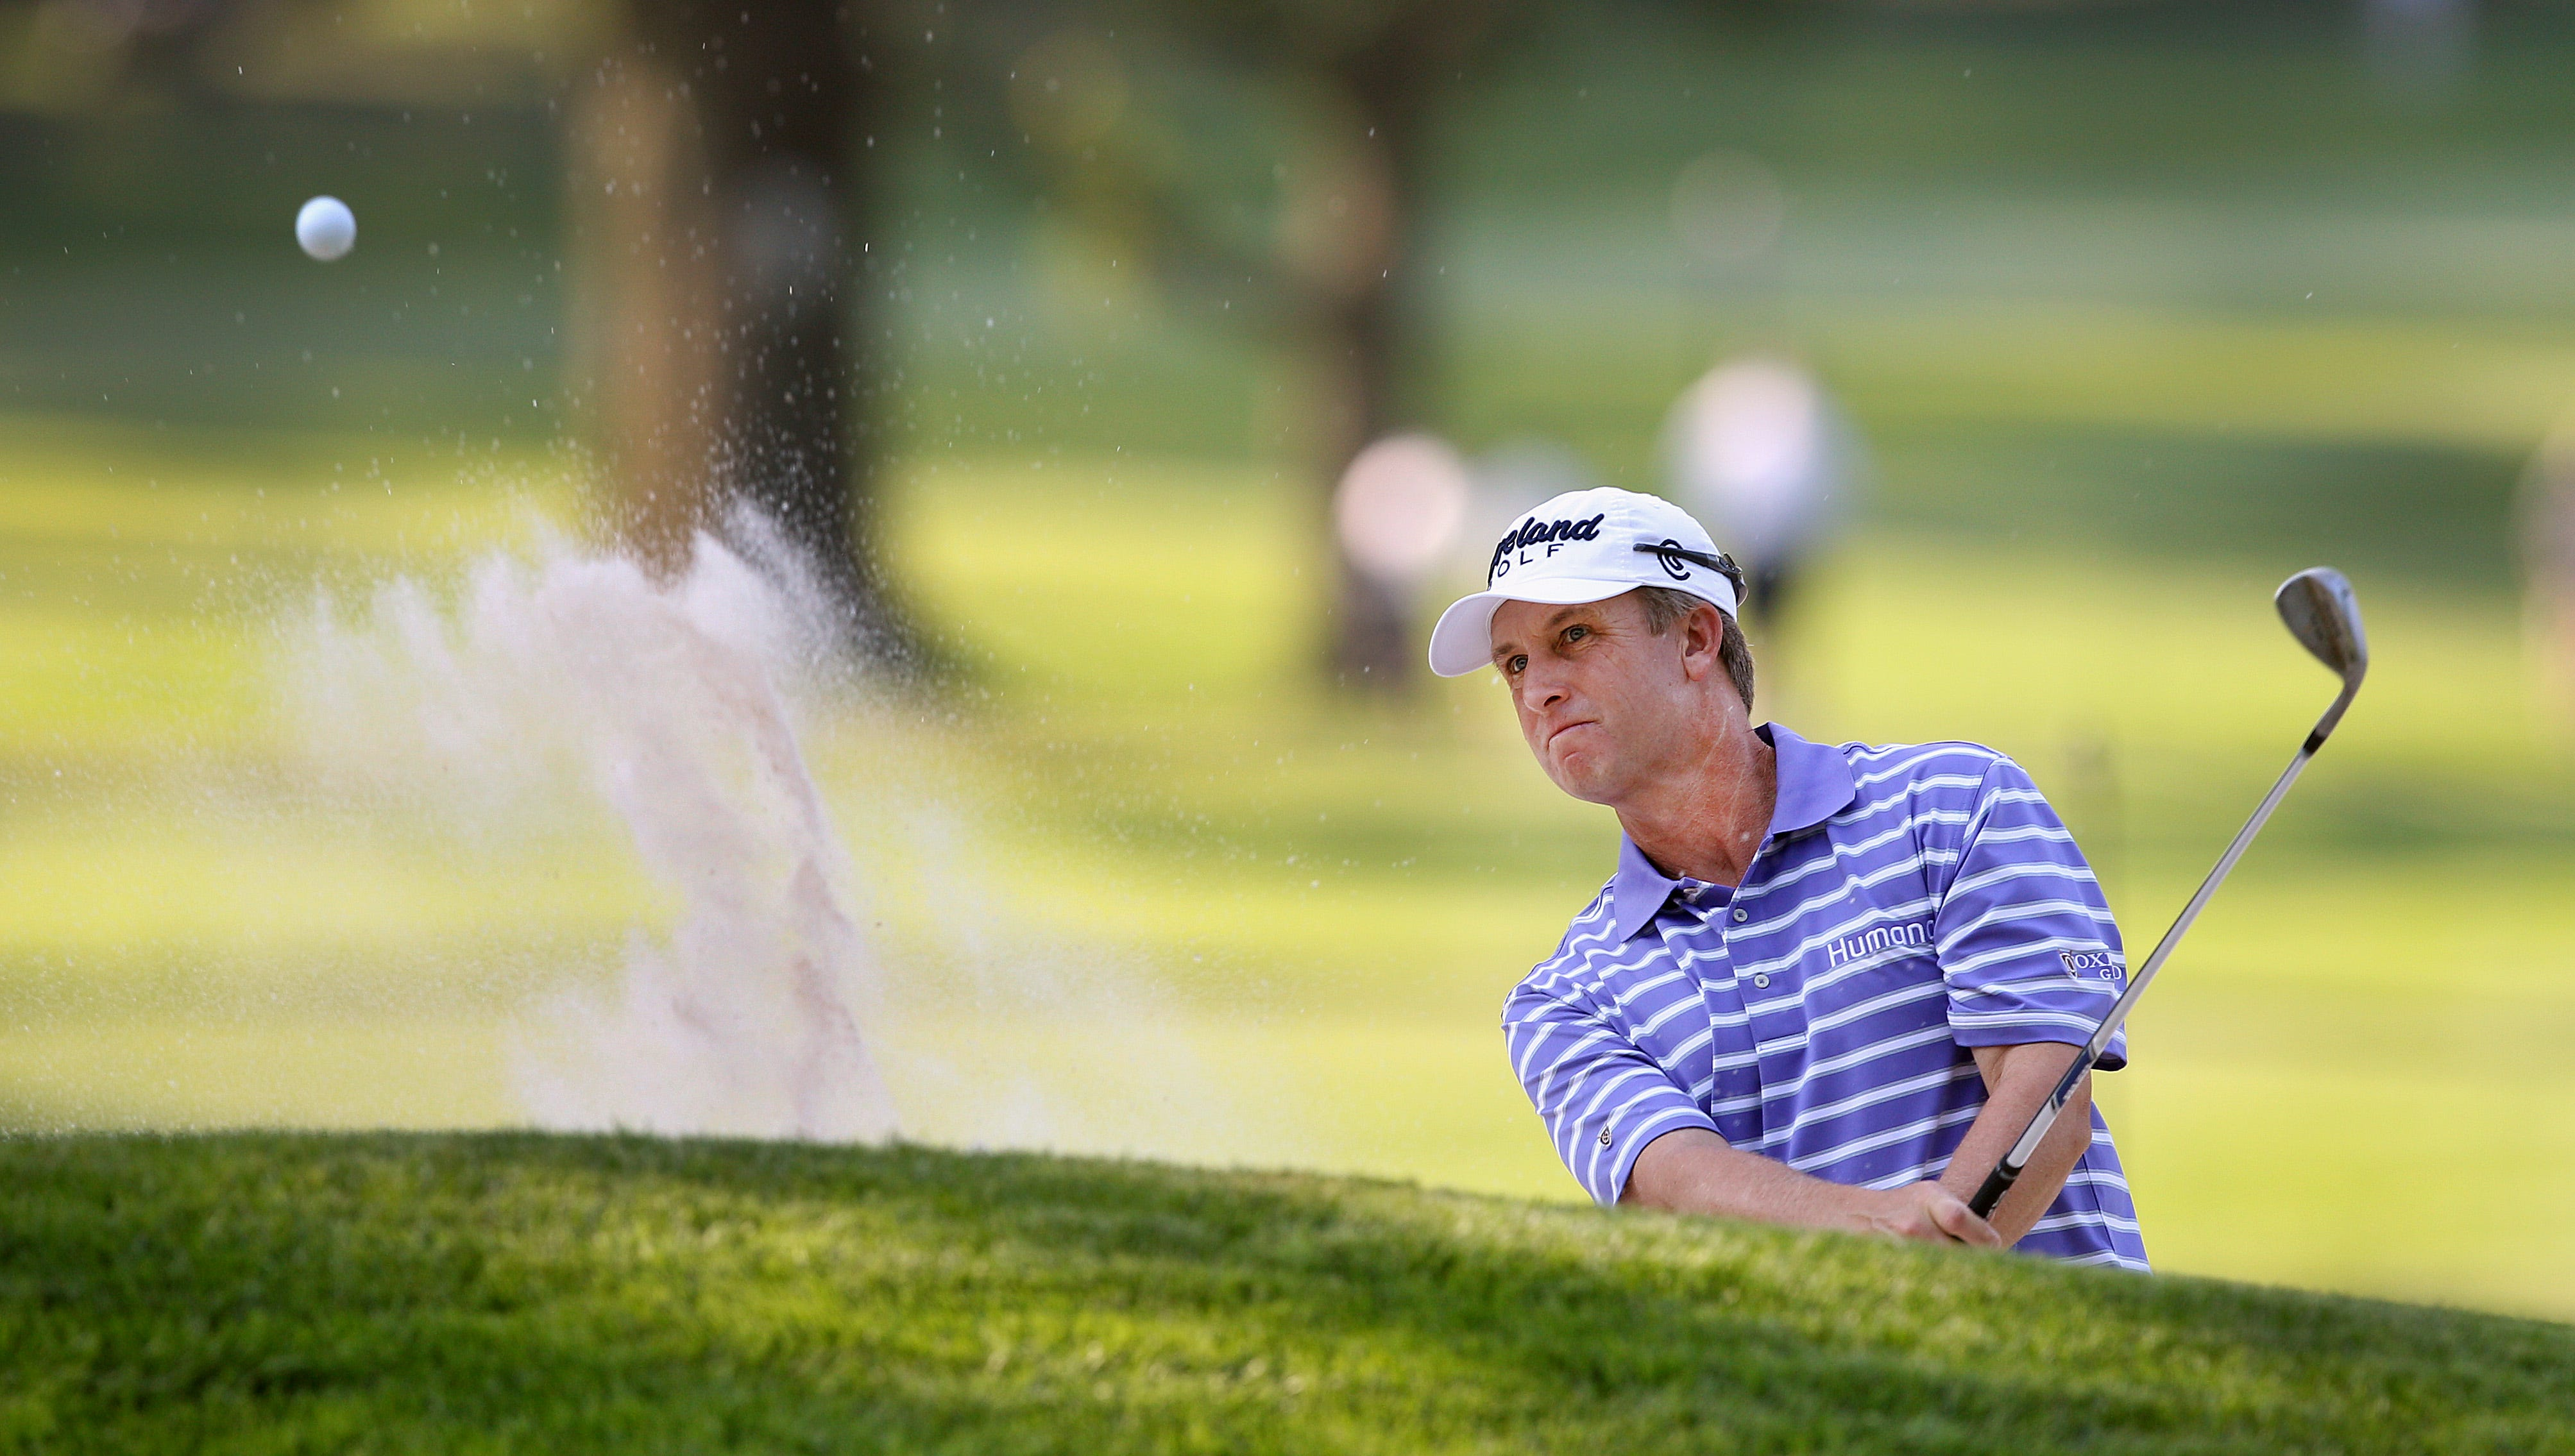 David Toms hits out of a bunker on 7.